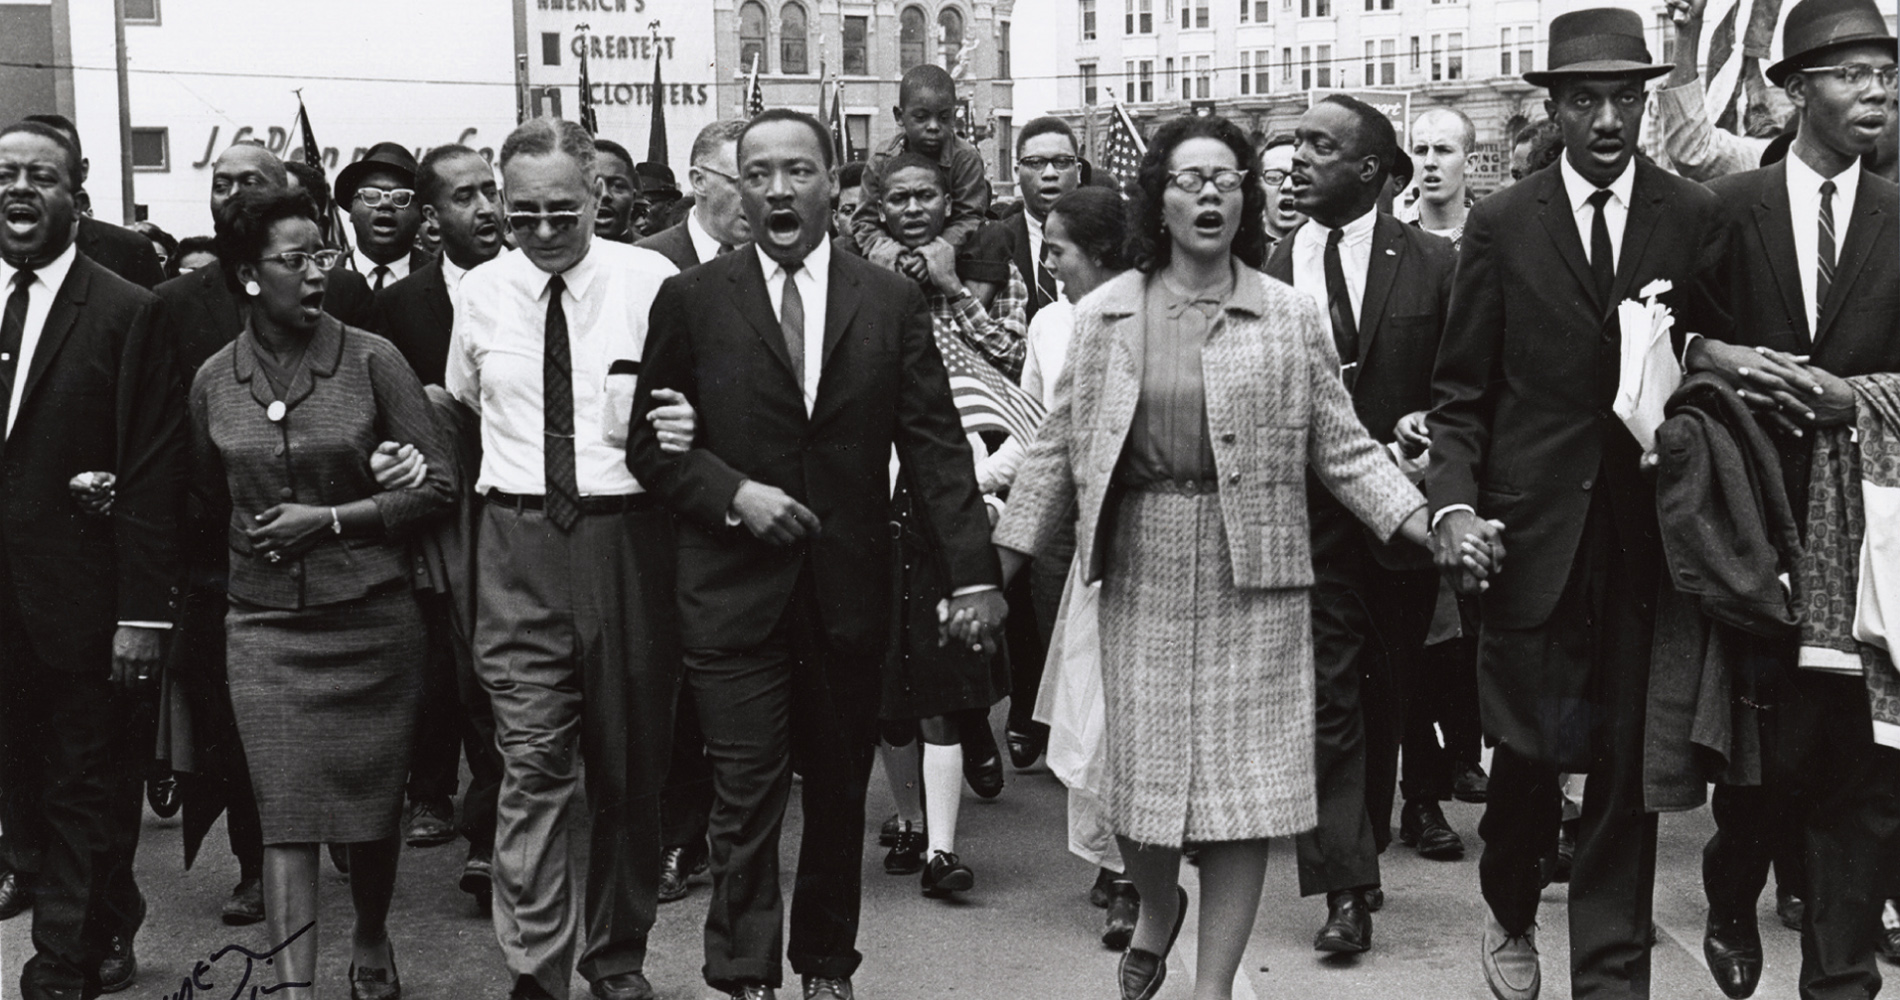 A photo of the historic Selma to Montgomery march in 1965 with Dr. Martin Luther King, Jr. and Mrs. King in the center - takenby photographerSpider Martin now displayed at The Levine Museum . For more photos from this historic event, visit the photography exhibit currently on display at  The Levine Museum of the South .